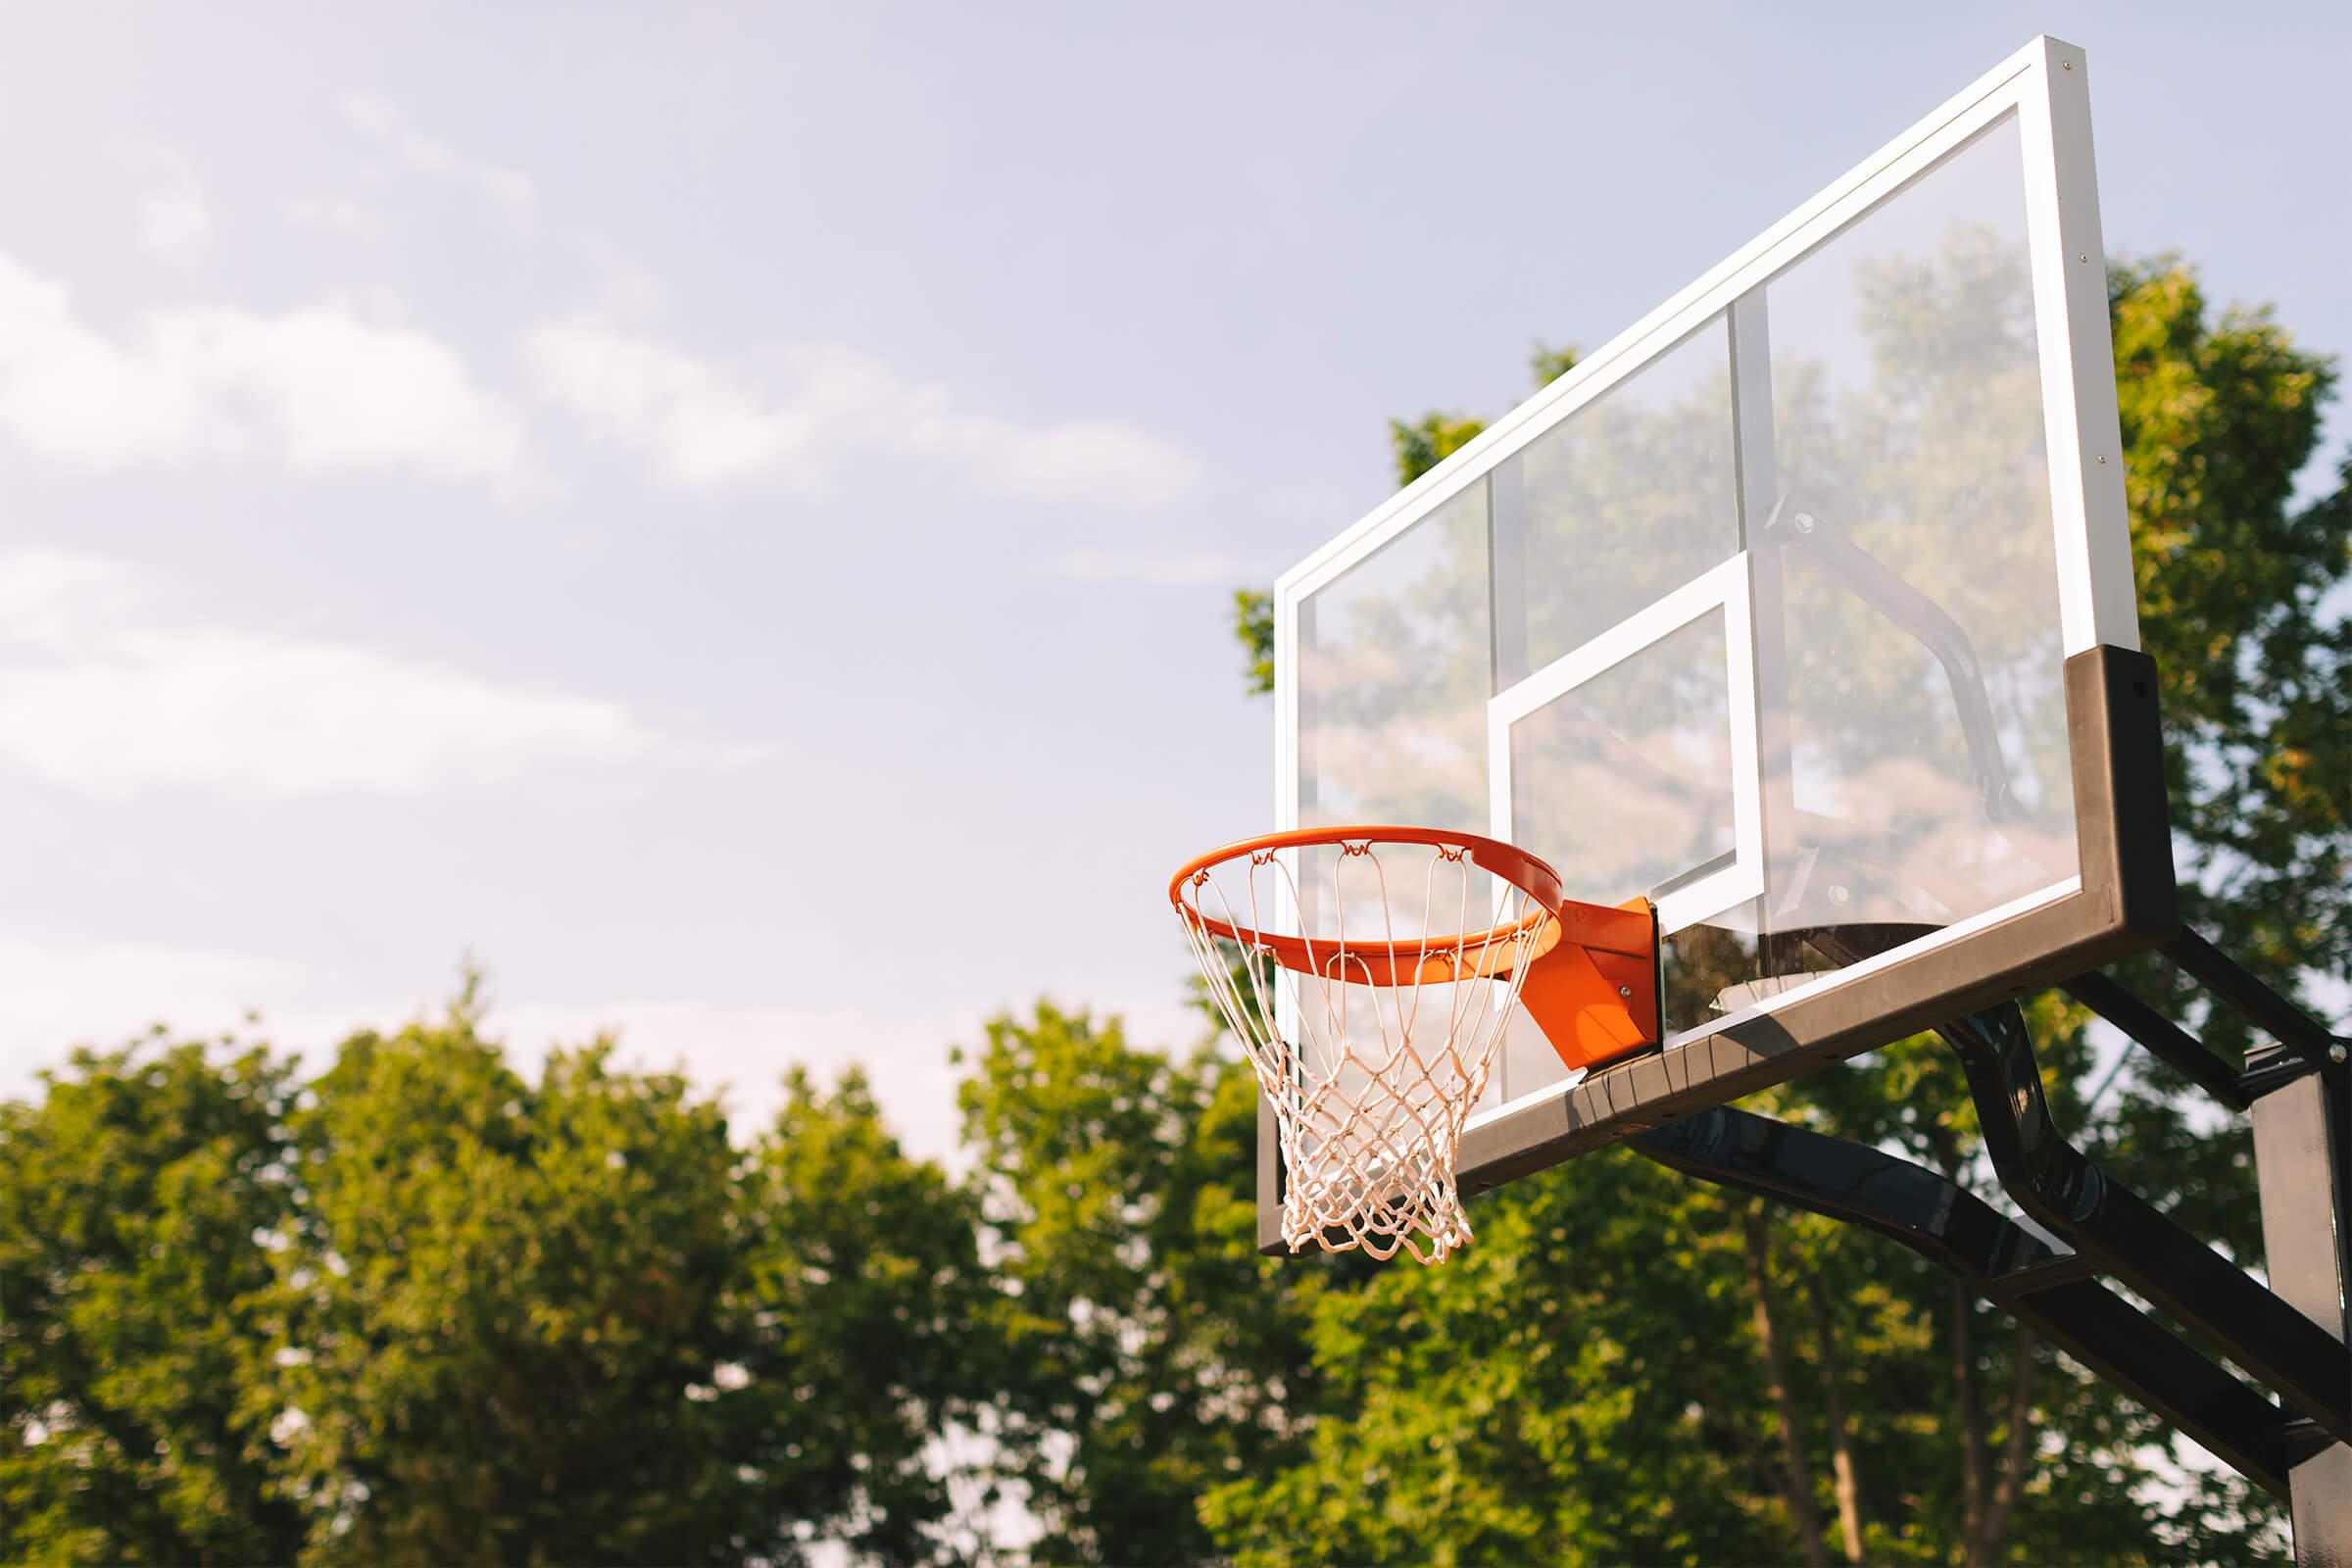 a person flying through the air on a basketball court